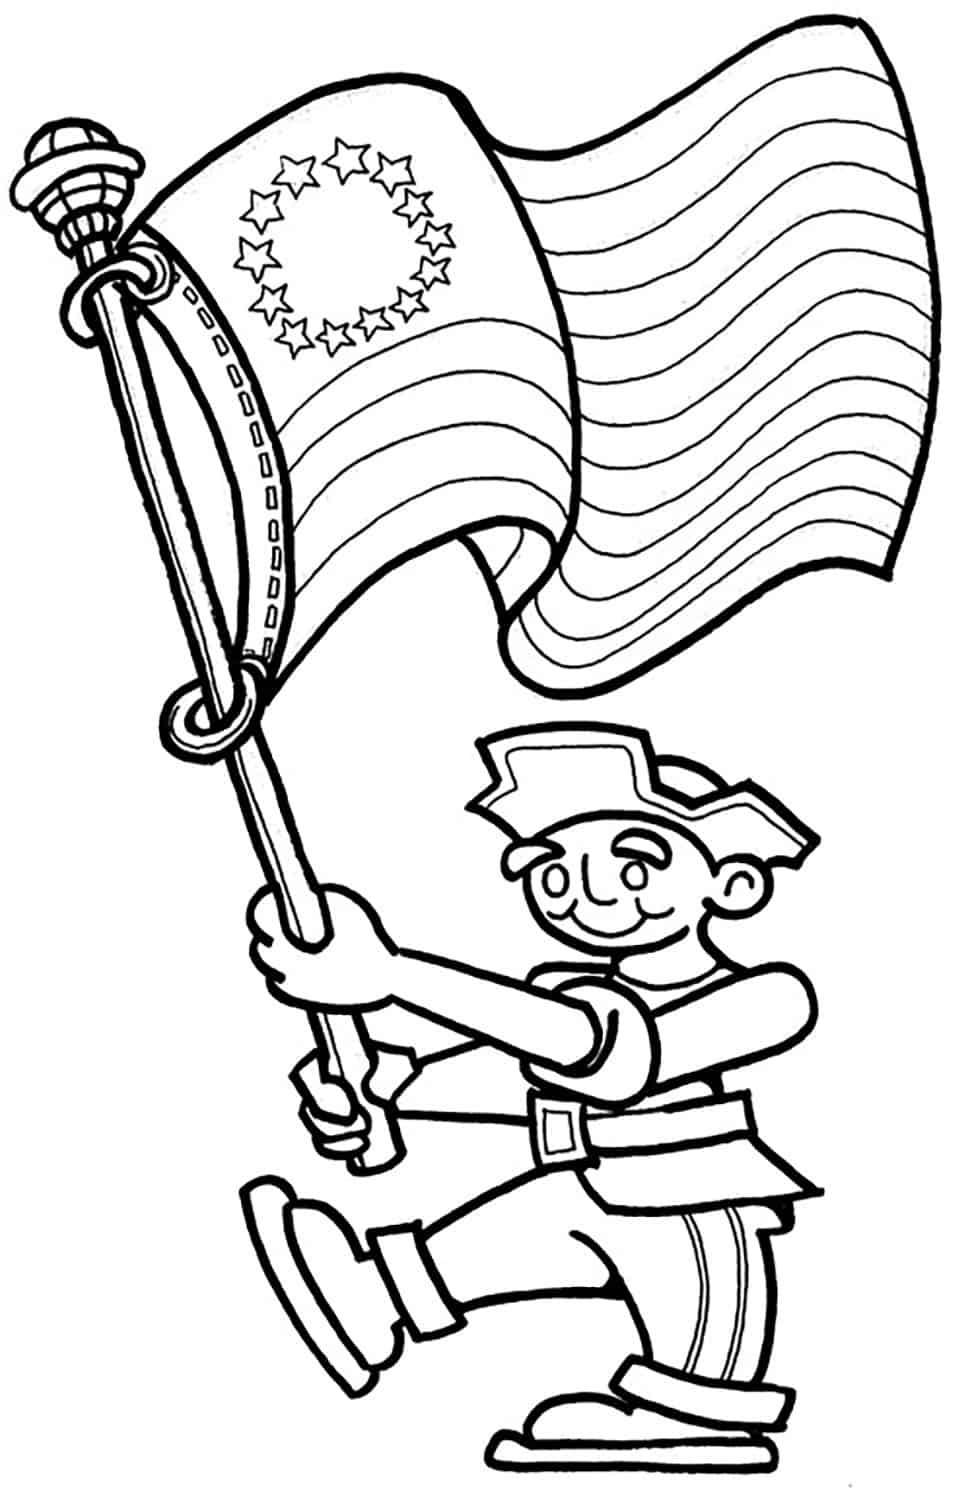 4th of july coloring pages free printable fourth of july coloring pages 4 designs july 4th coloring of pages